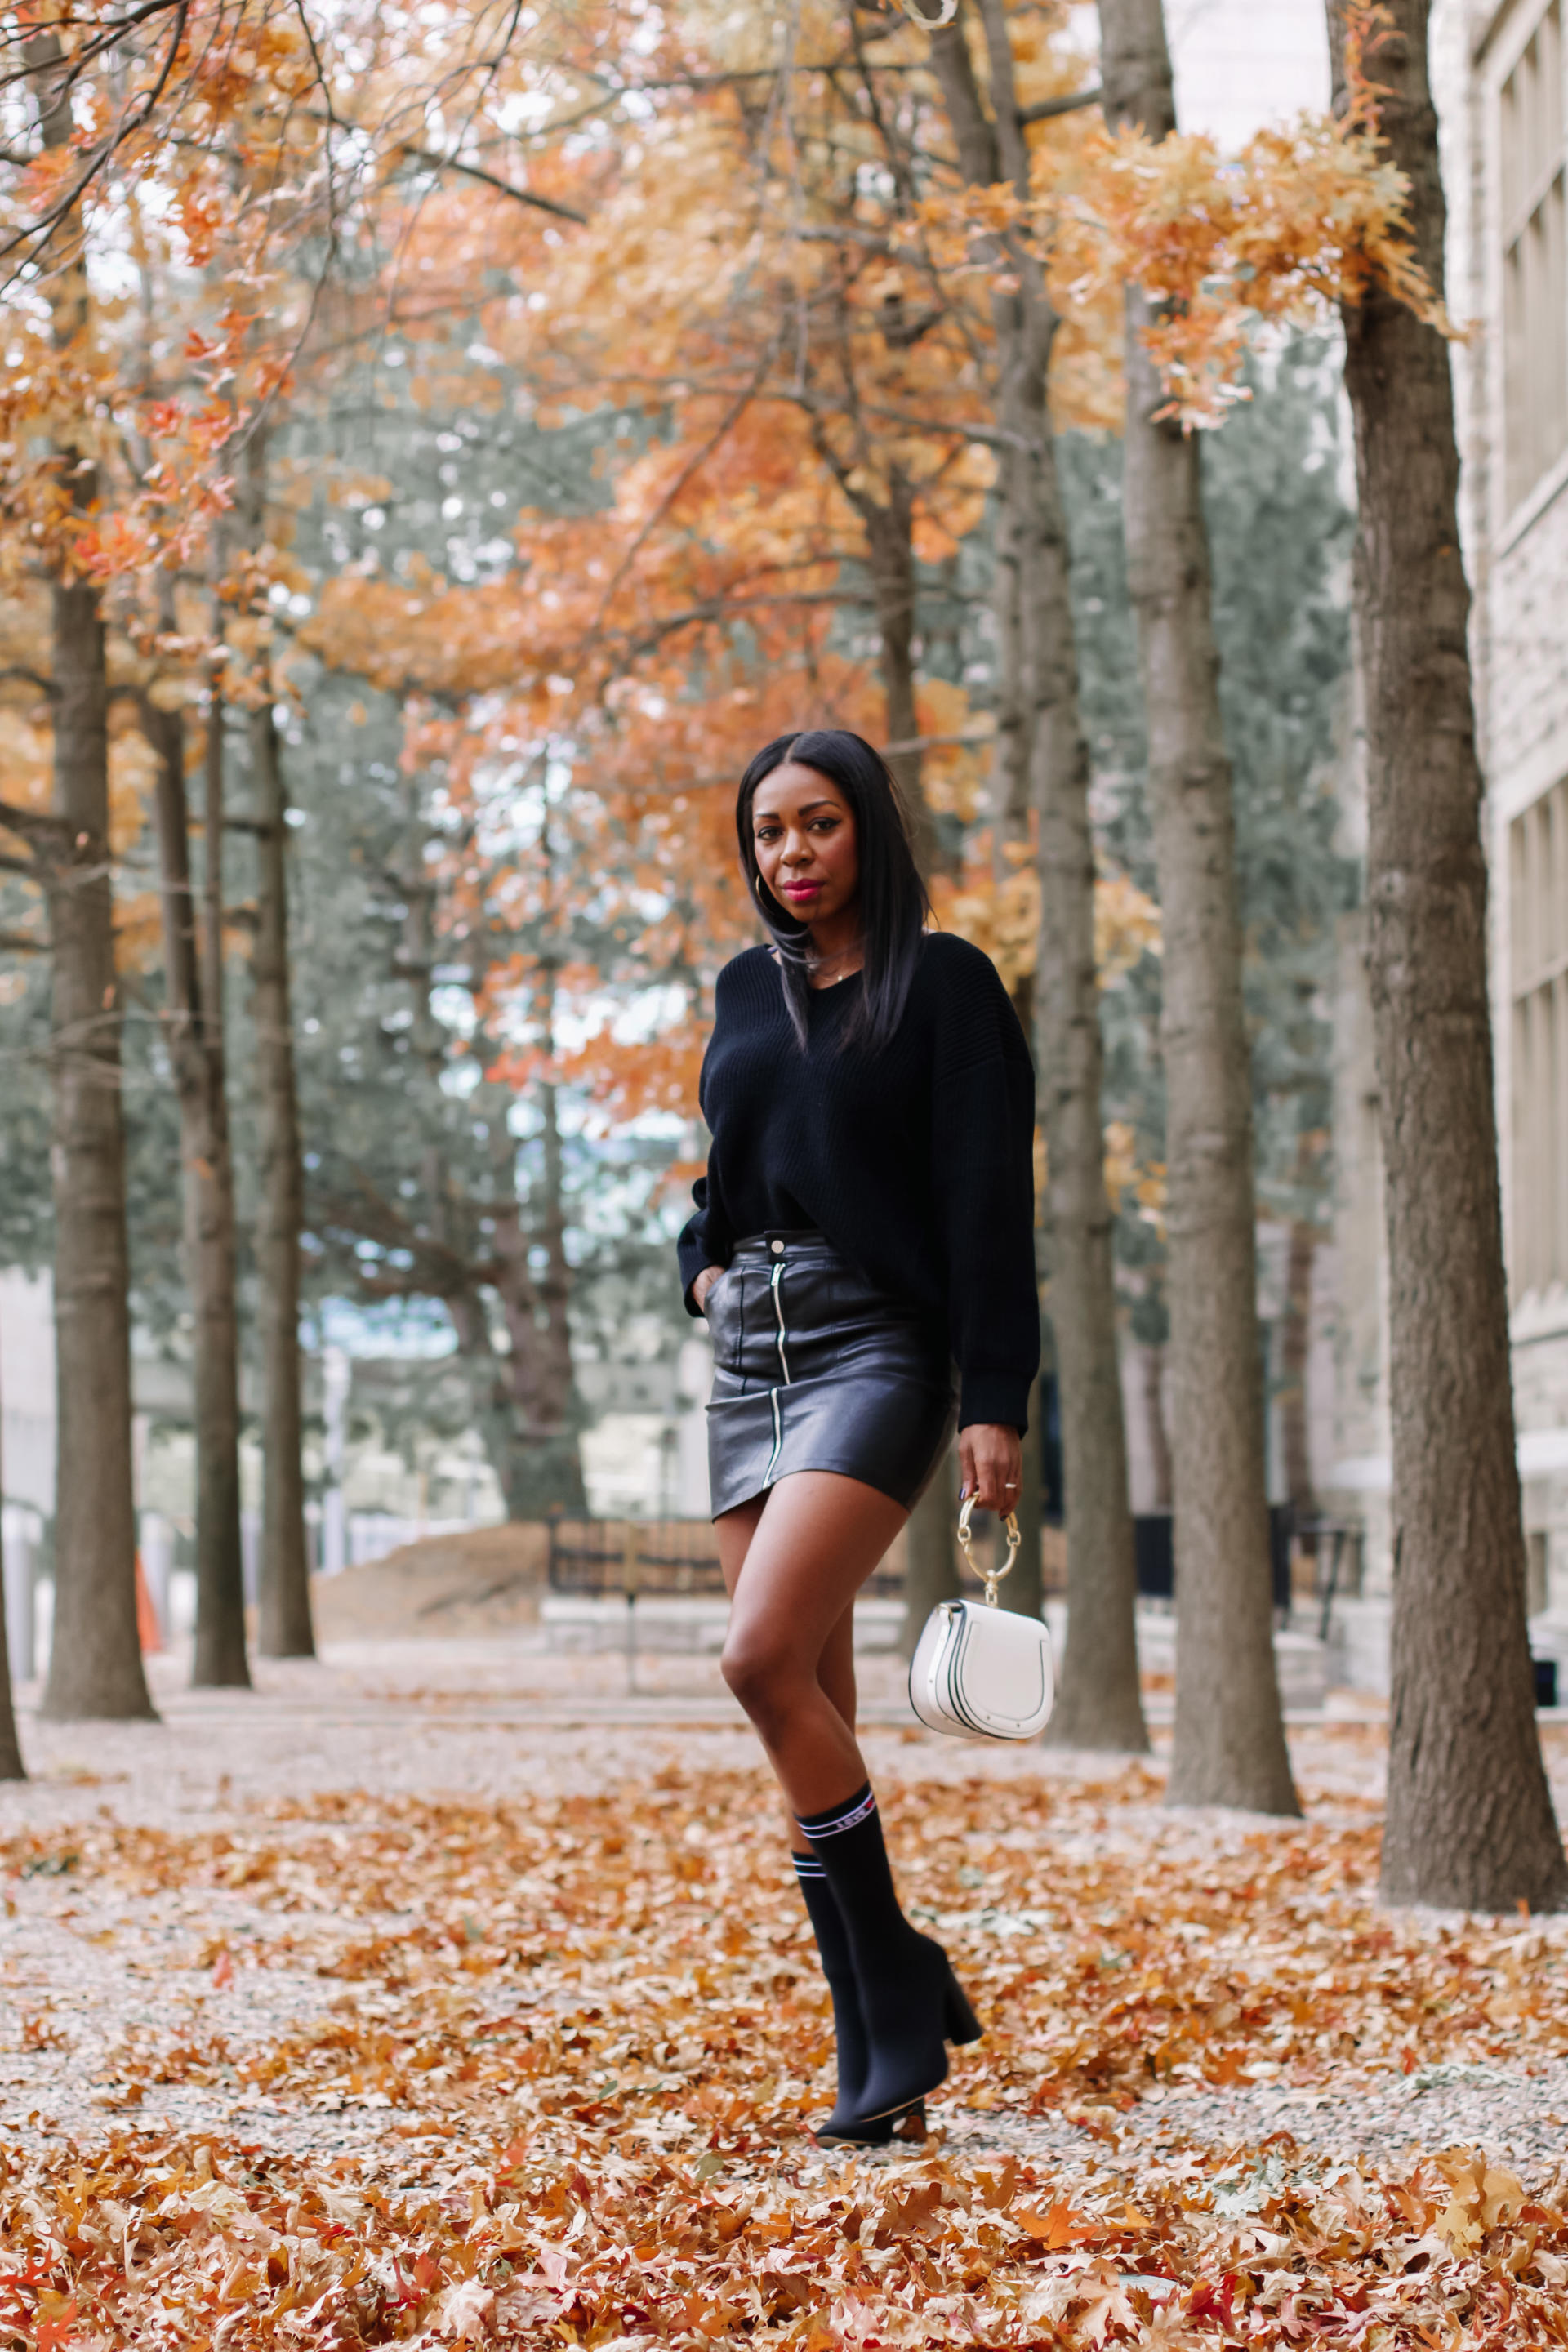 A Halloween Costume With Clothing You'll Definitely Wear Again And Again | Style Domination by Dominique Baker